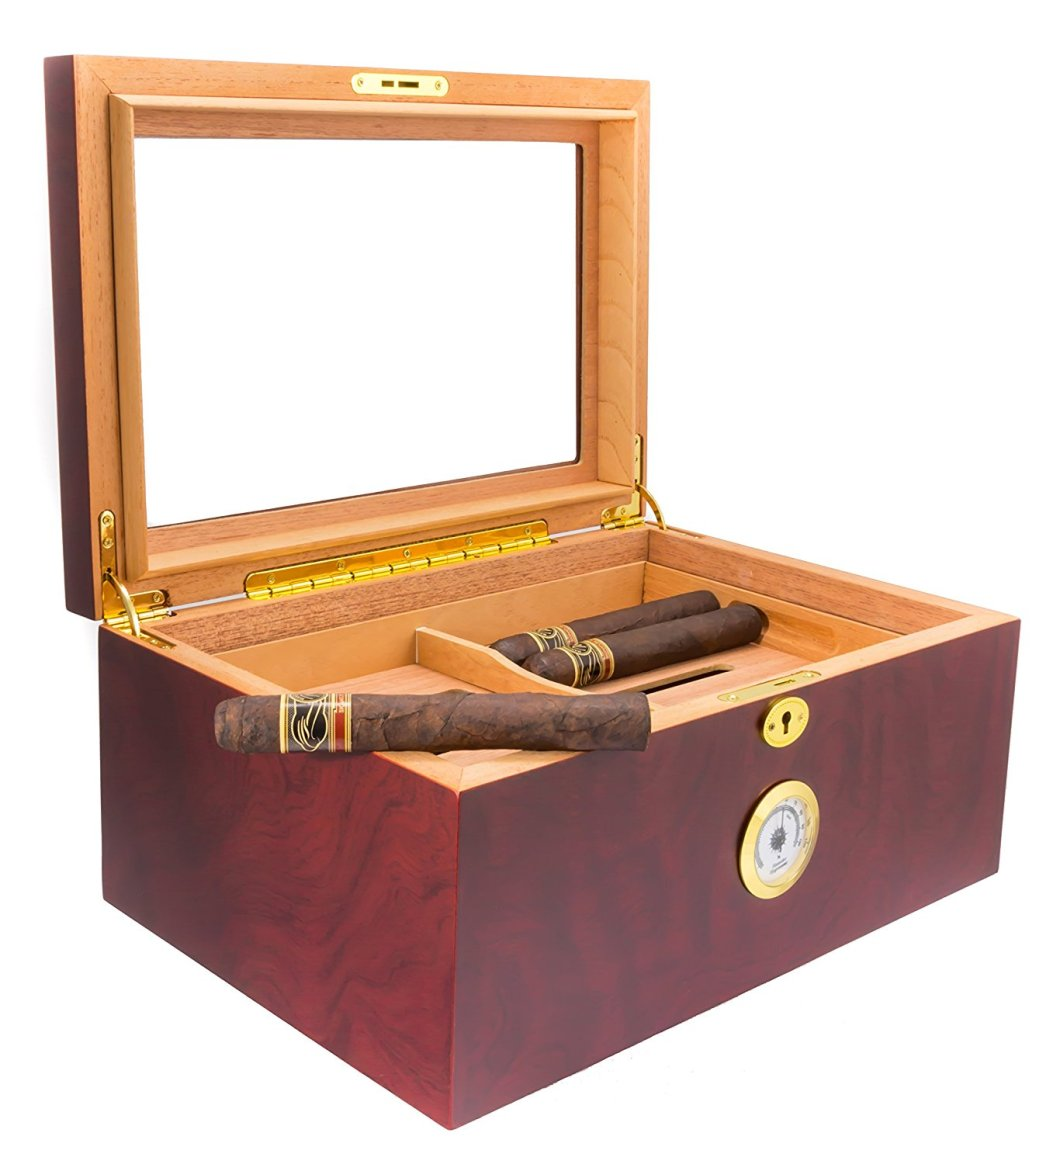 Best Cheap Humidor: The Mantello 100 Cigar Desktop